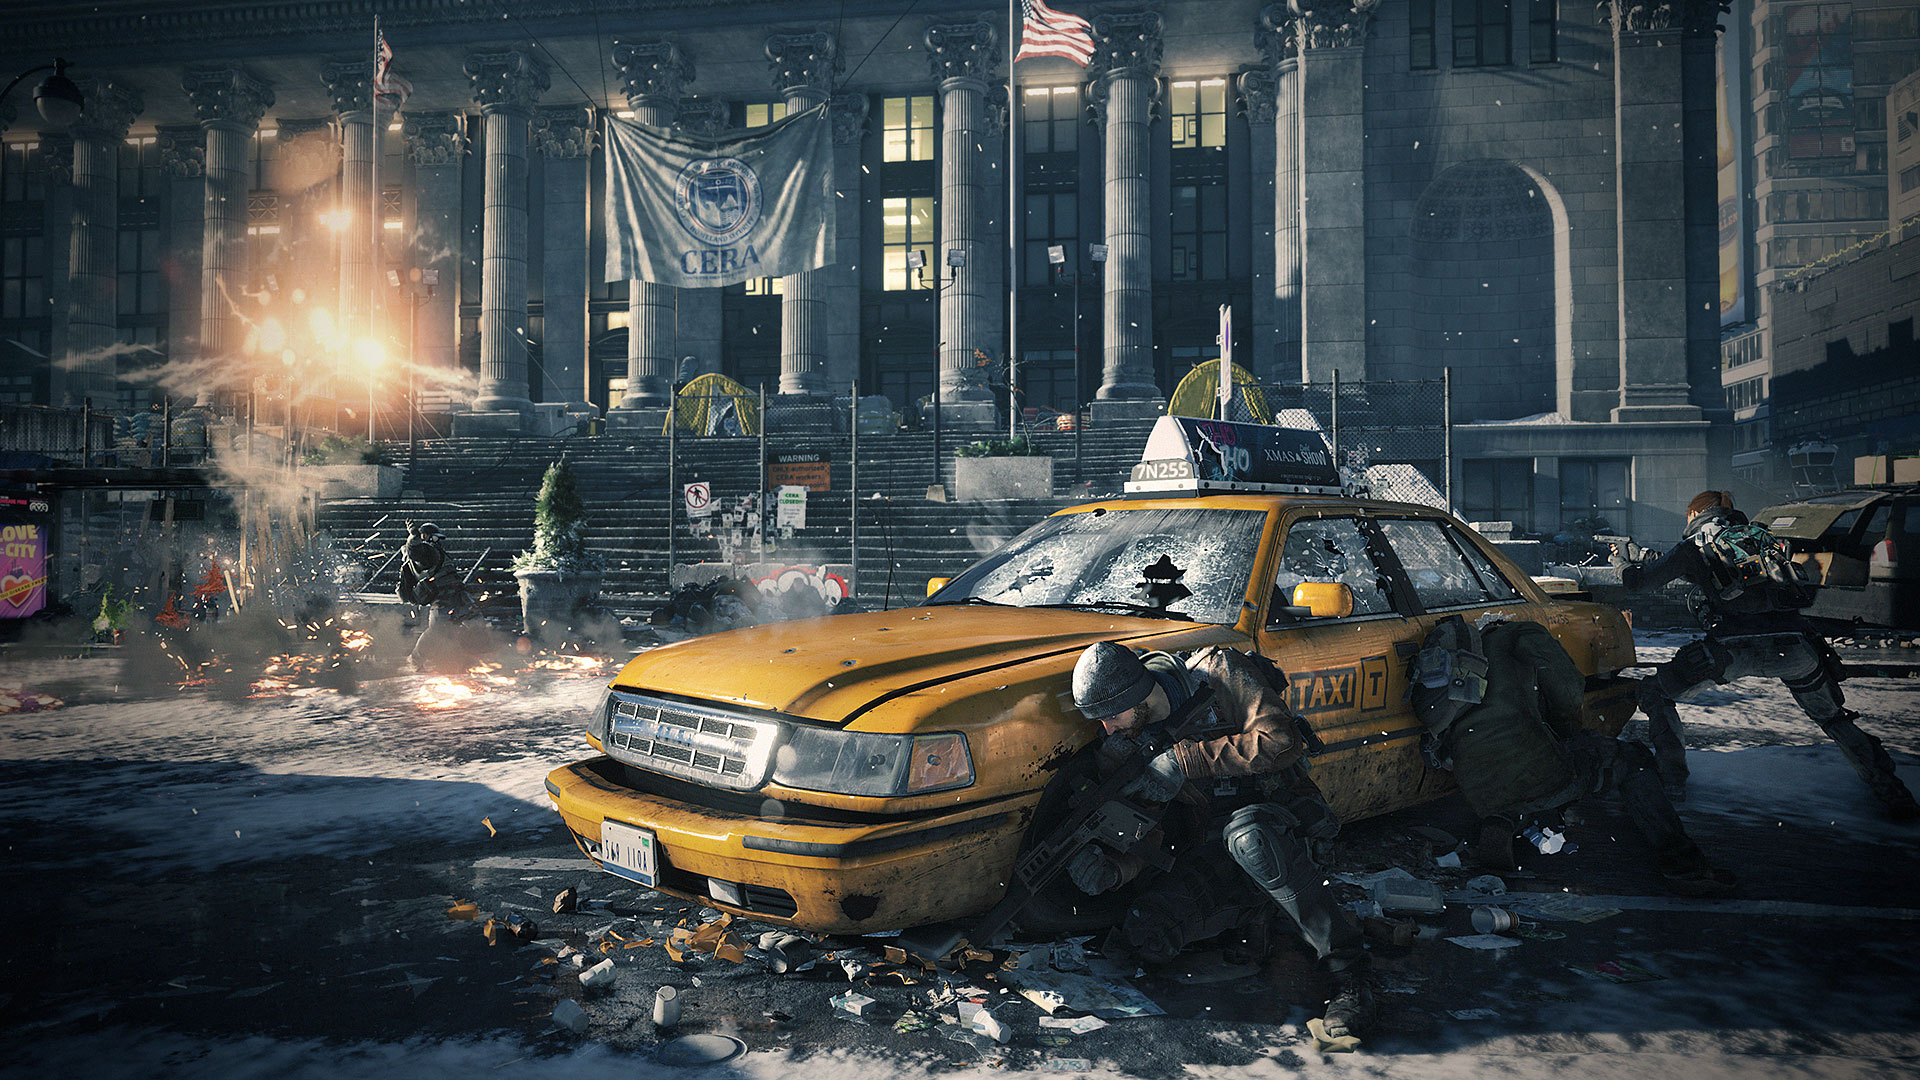 HQ Tom Clancy's The Division Wallpapers | File 561.5Kb